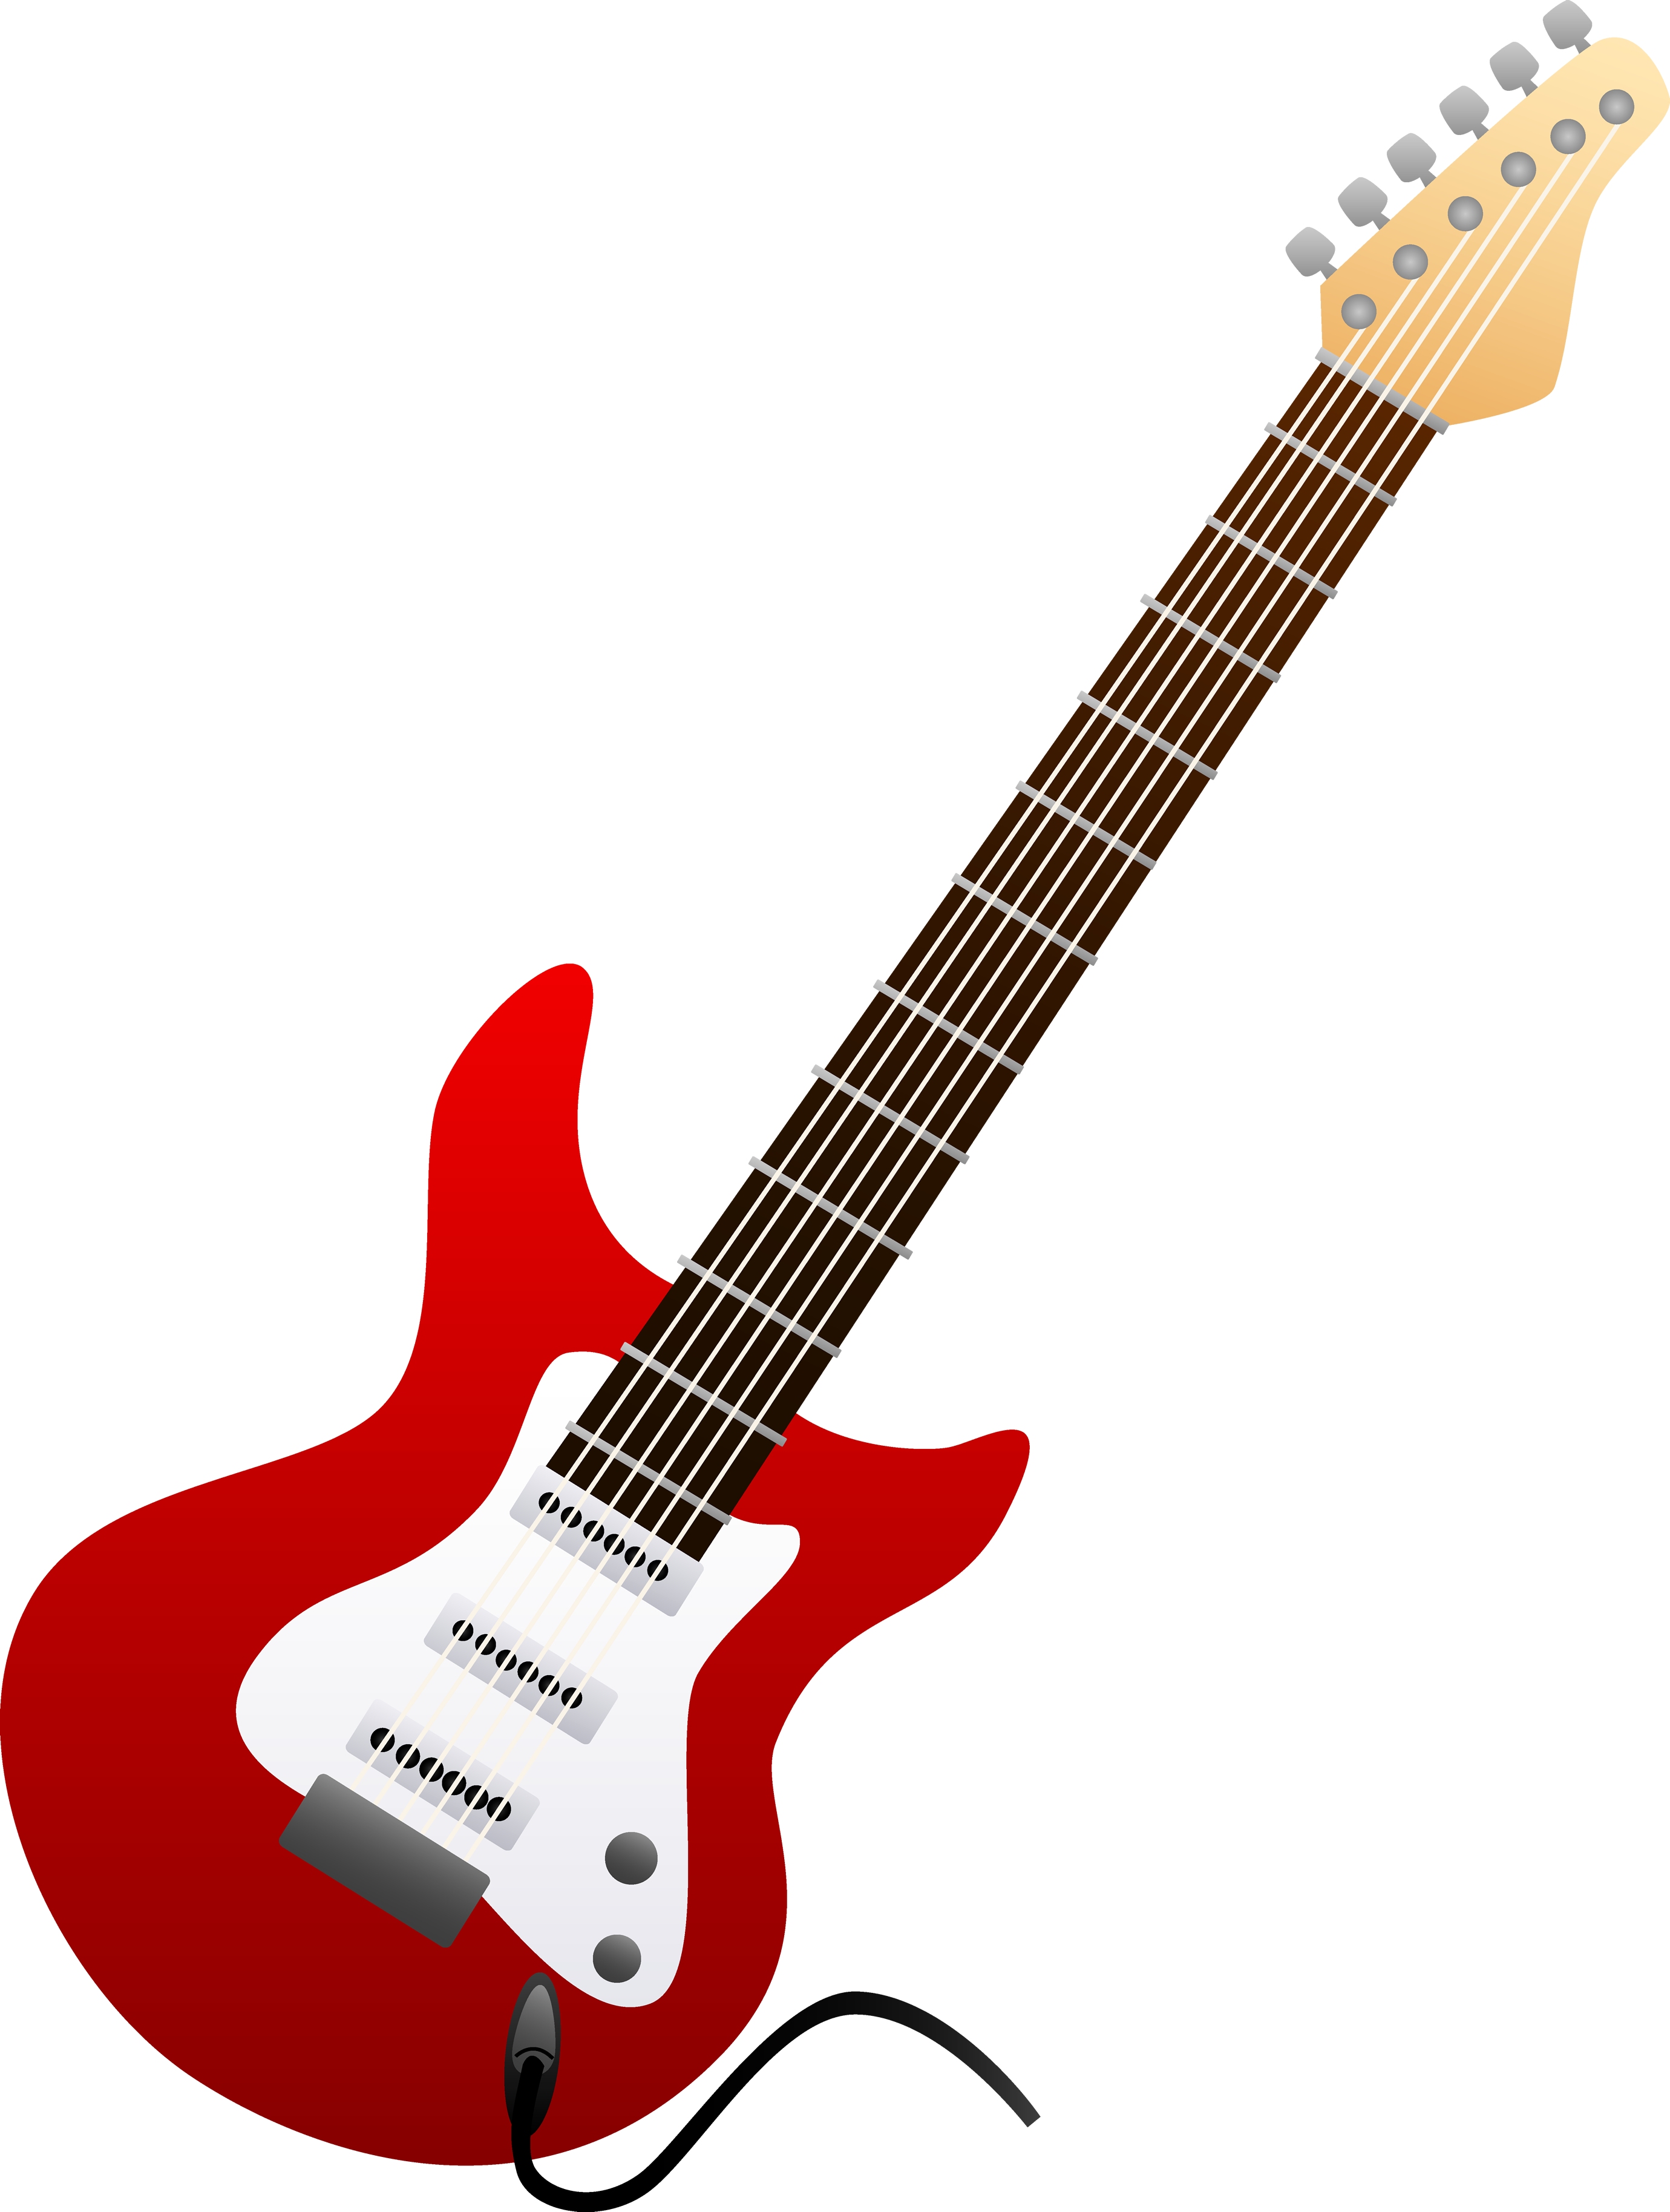 Electric png . Clipart guitar transparent background